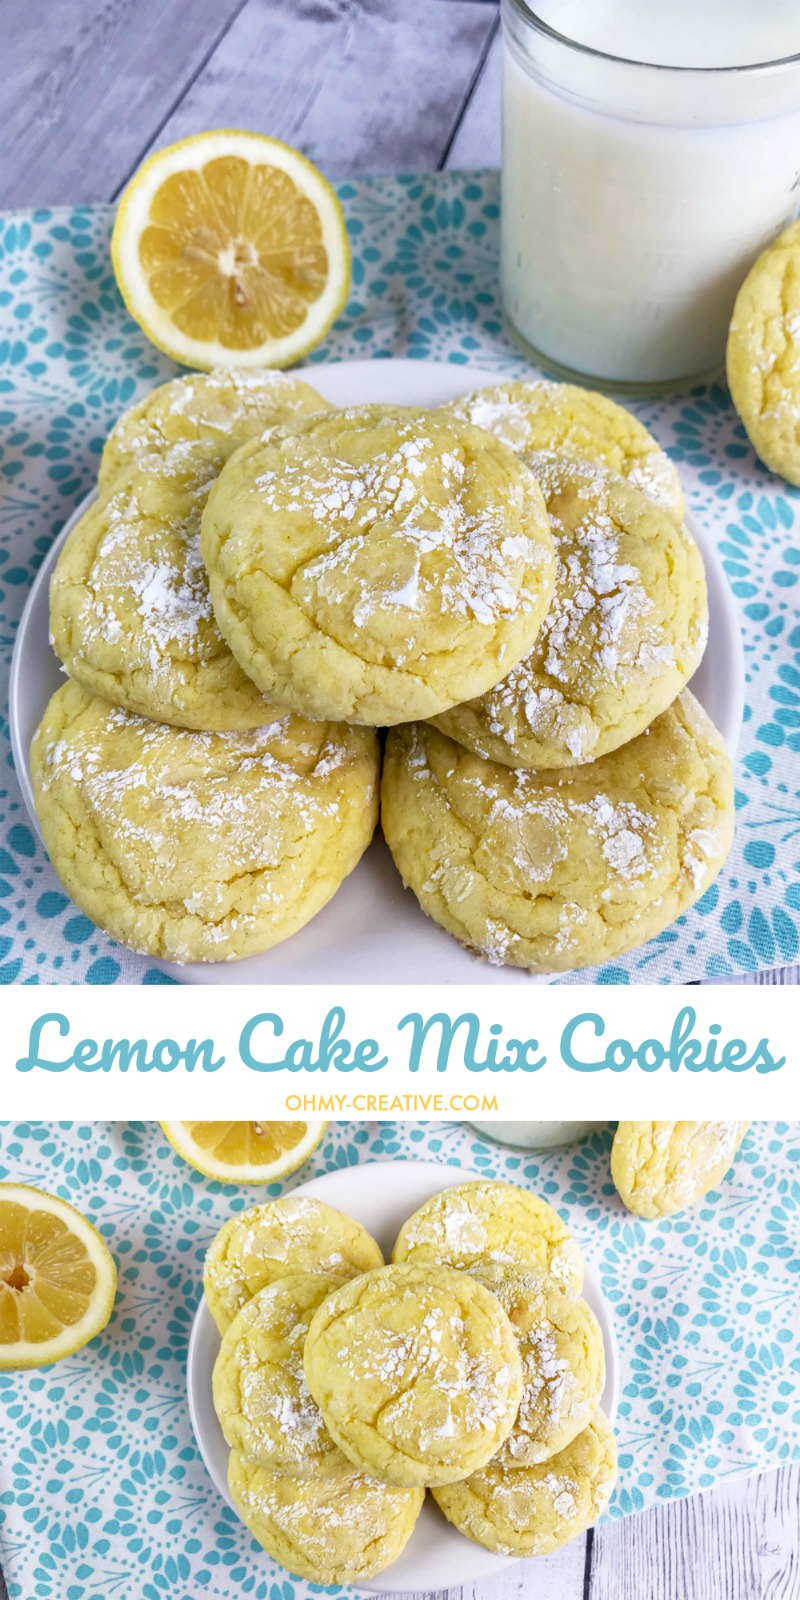 Easy Lemon Cake Mix Cookies Recipe | OHMY-CREATIVE.COM | Lemon Crinkle Cookies | Lemon Cookies | Easy Lemon Cookies | Lemon Cookie Recipe | Cake Mix Cookies | Lemon Crinkle Cookies with Cake Mix